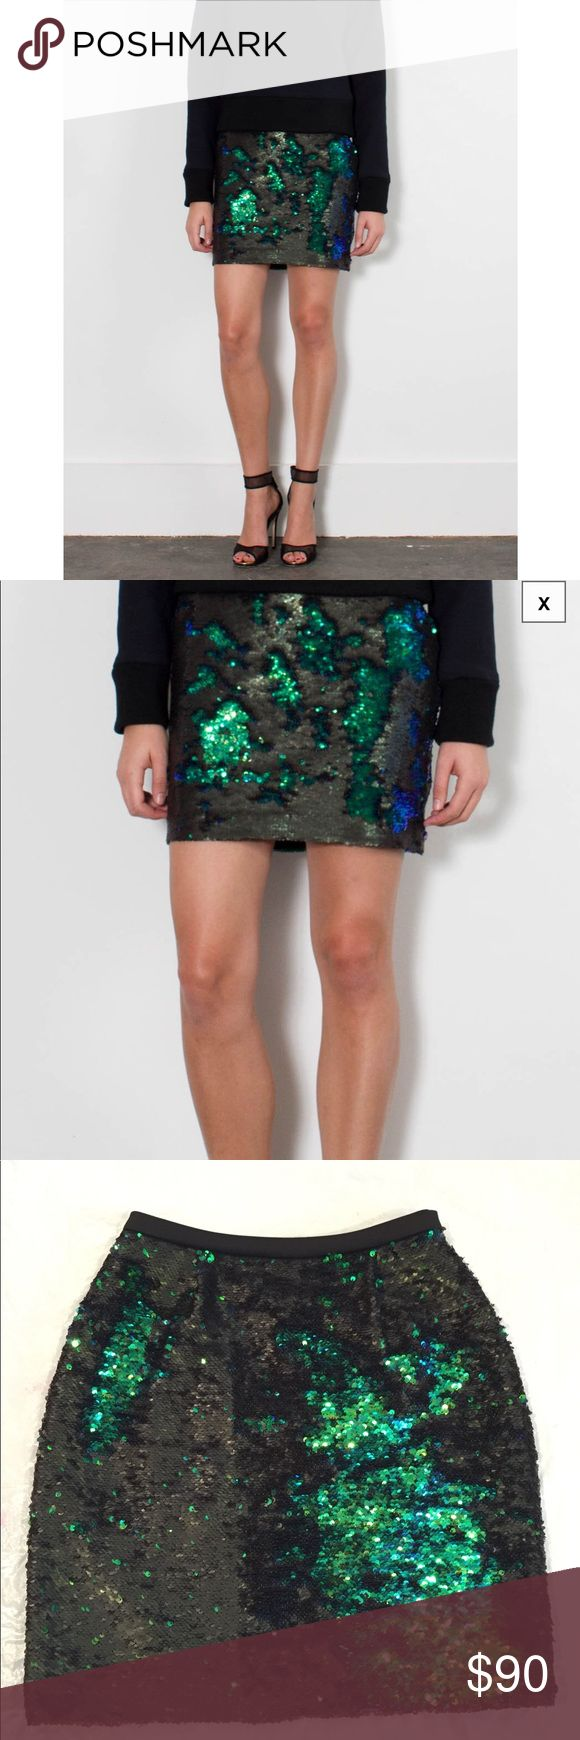 "NWT**SACHIN + BABI*Sequin Mermaid Mini Skirt**XS Gorgeous mini skirt. It's by Sachin + Babi and its called the Brittany skirt. Sequin mini skirt in mermaid. All over green and black sequins and as you brush it it changes colors.!!!! Waist: 25"" Hips: 37"" Length: 17 1/2"" Inside the tag is in a sticker format!! This skirt would look great with a plain black tank top or top or maybe even a white!!! Ultimate glam!!! Sachin + Babi Skirts Mini"